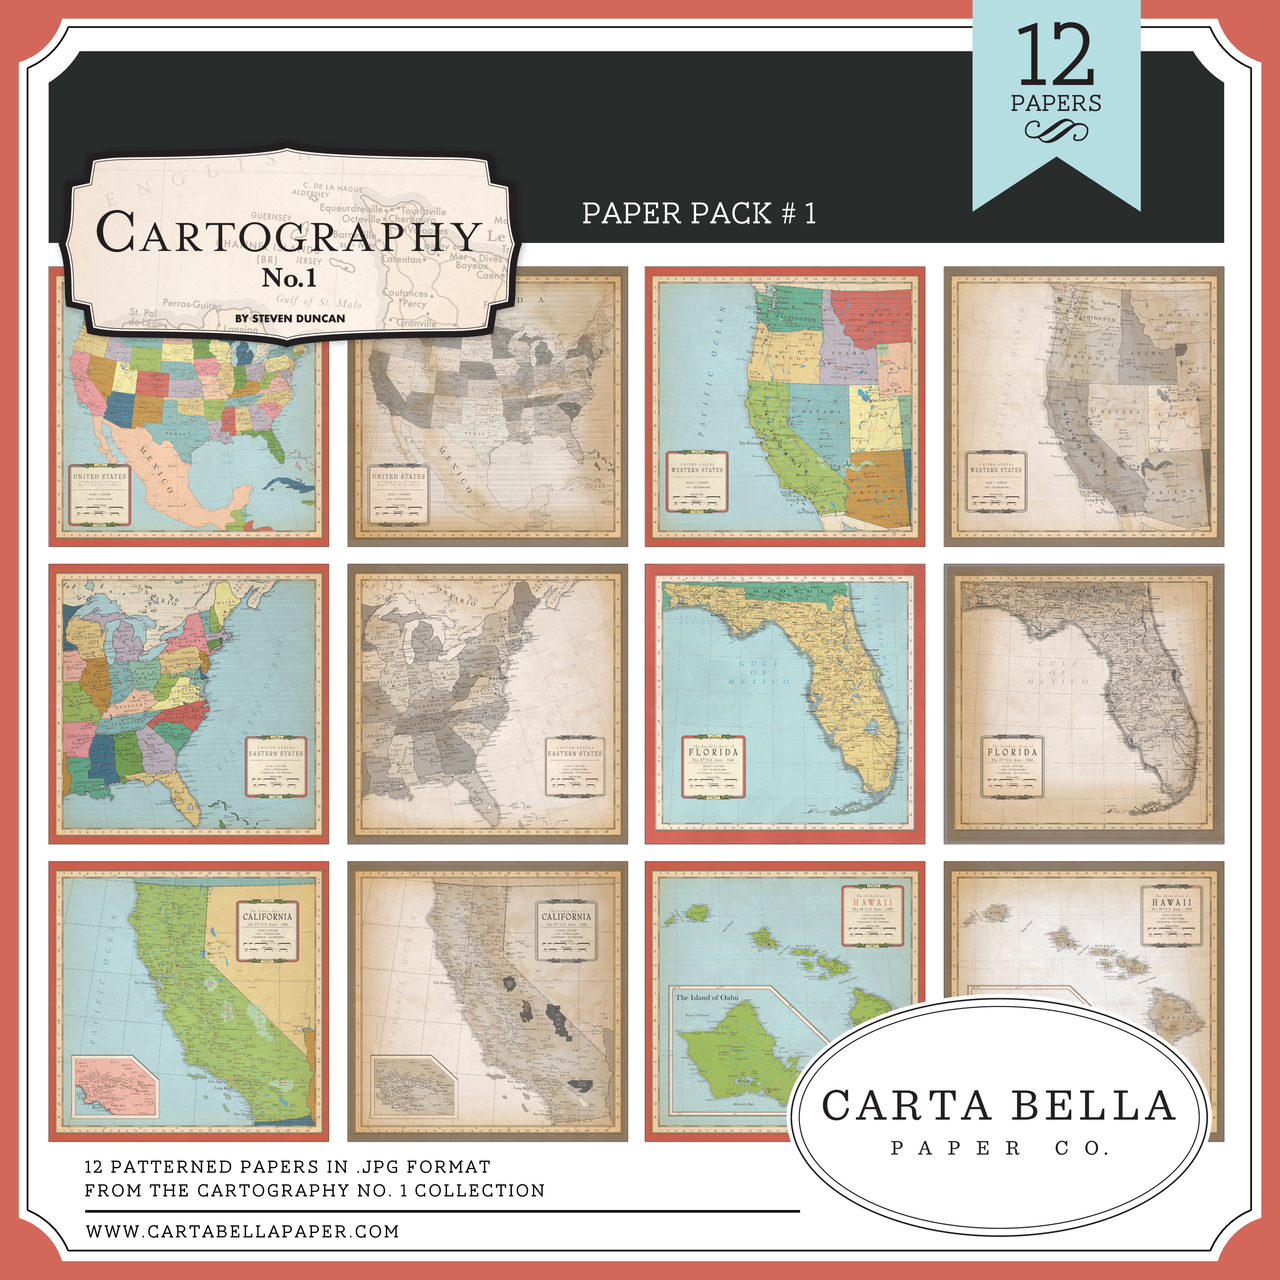 Cartography No. 1 Paper Pack #1